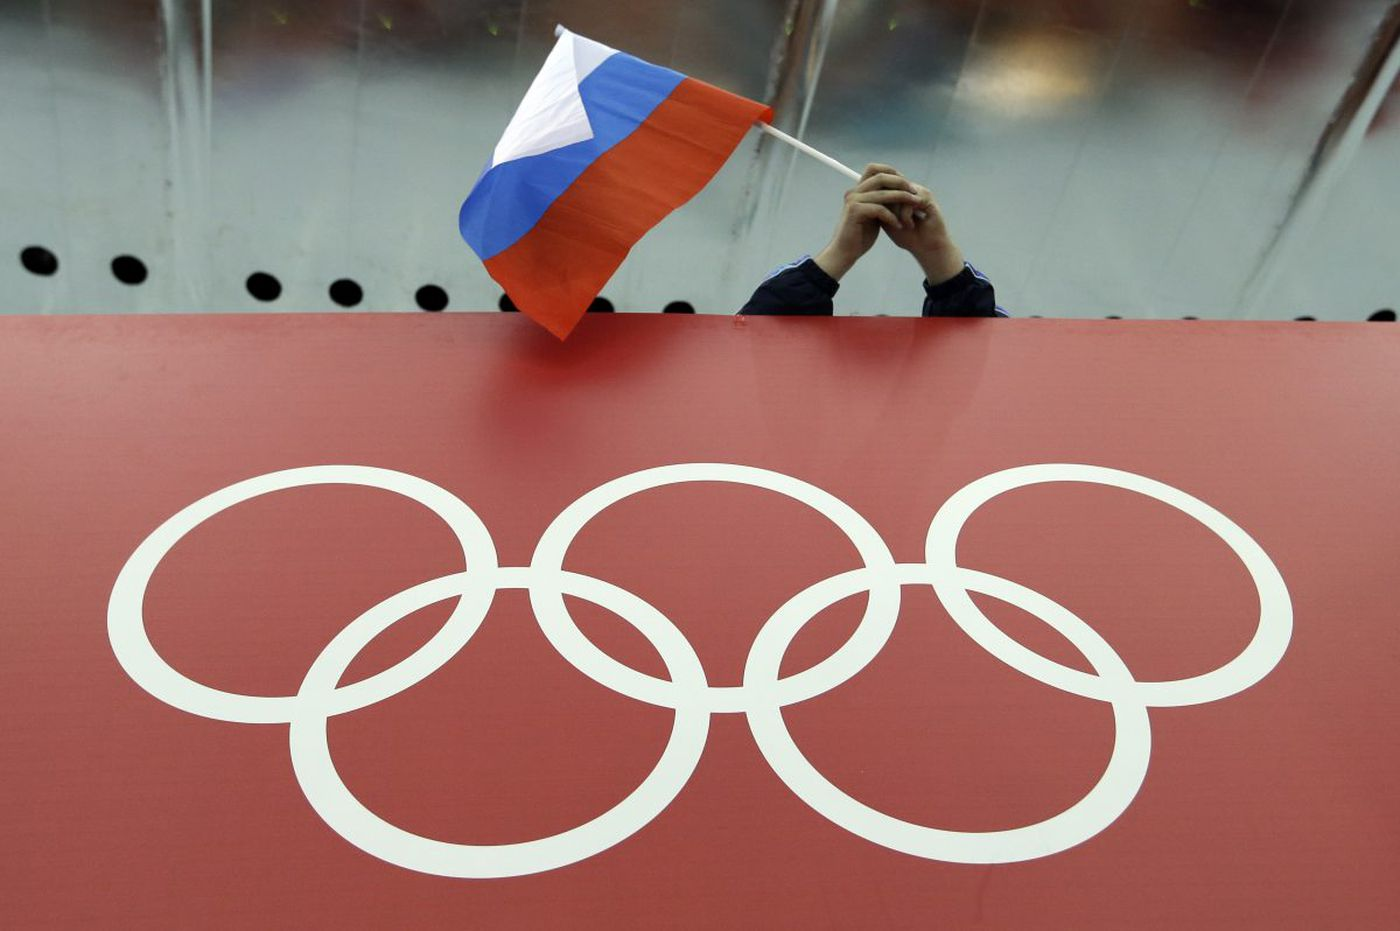 Russia banned from 2018 Olympics over state-run doping; clean athletes may compete under neutral flag